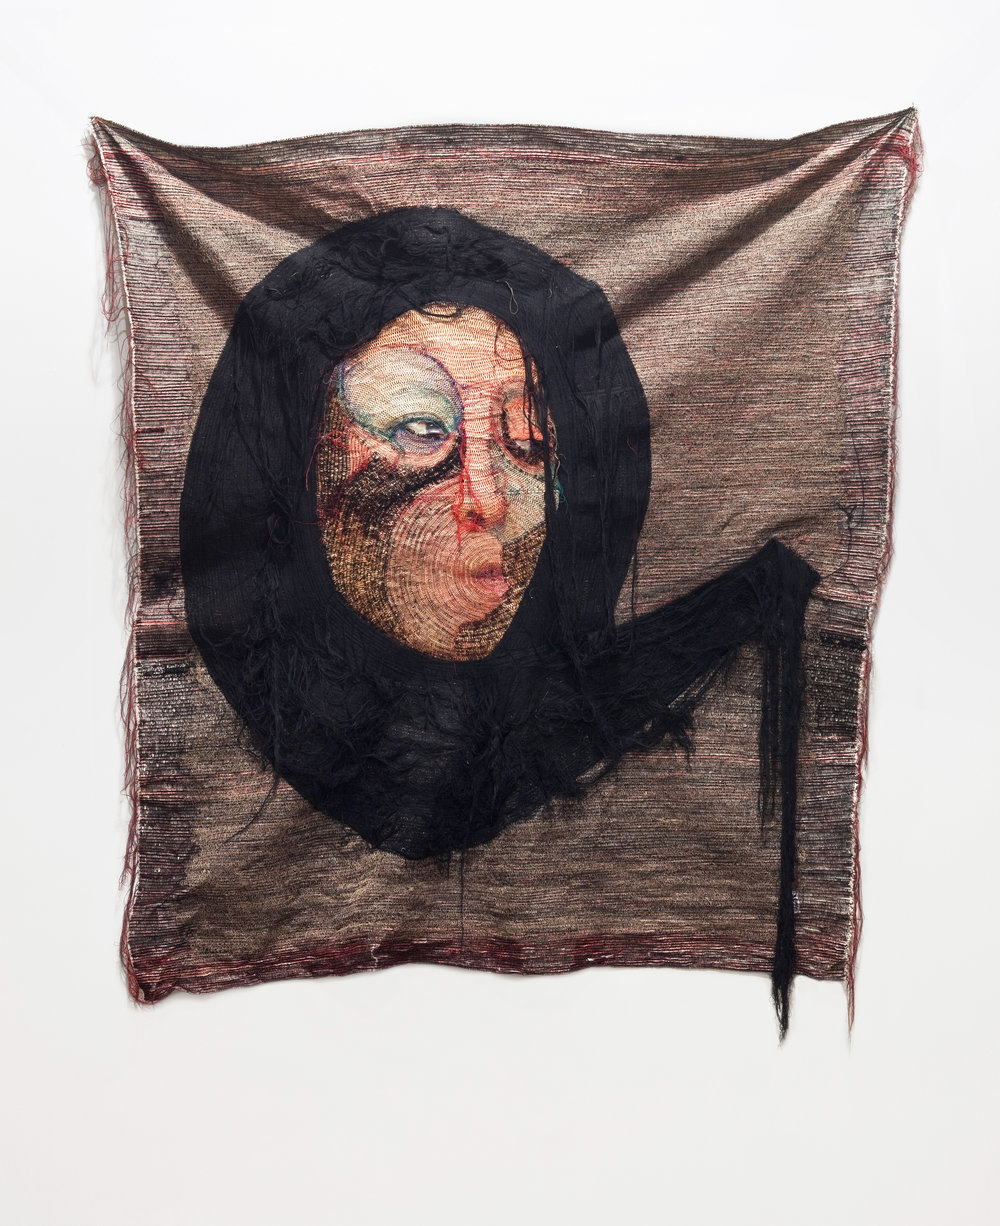 Rag face #63, 2013, Sewing on Fabric and Photograph Unique. Courtesy Yossi Milo Gallery, New York.  © Yoon Ji Seon